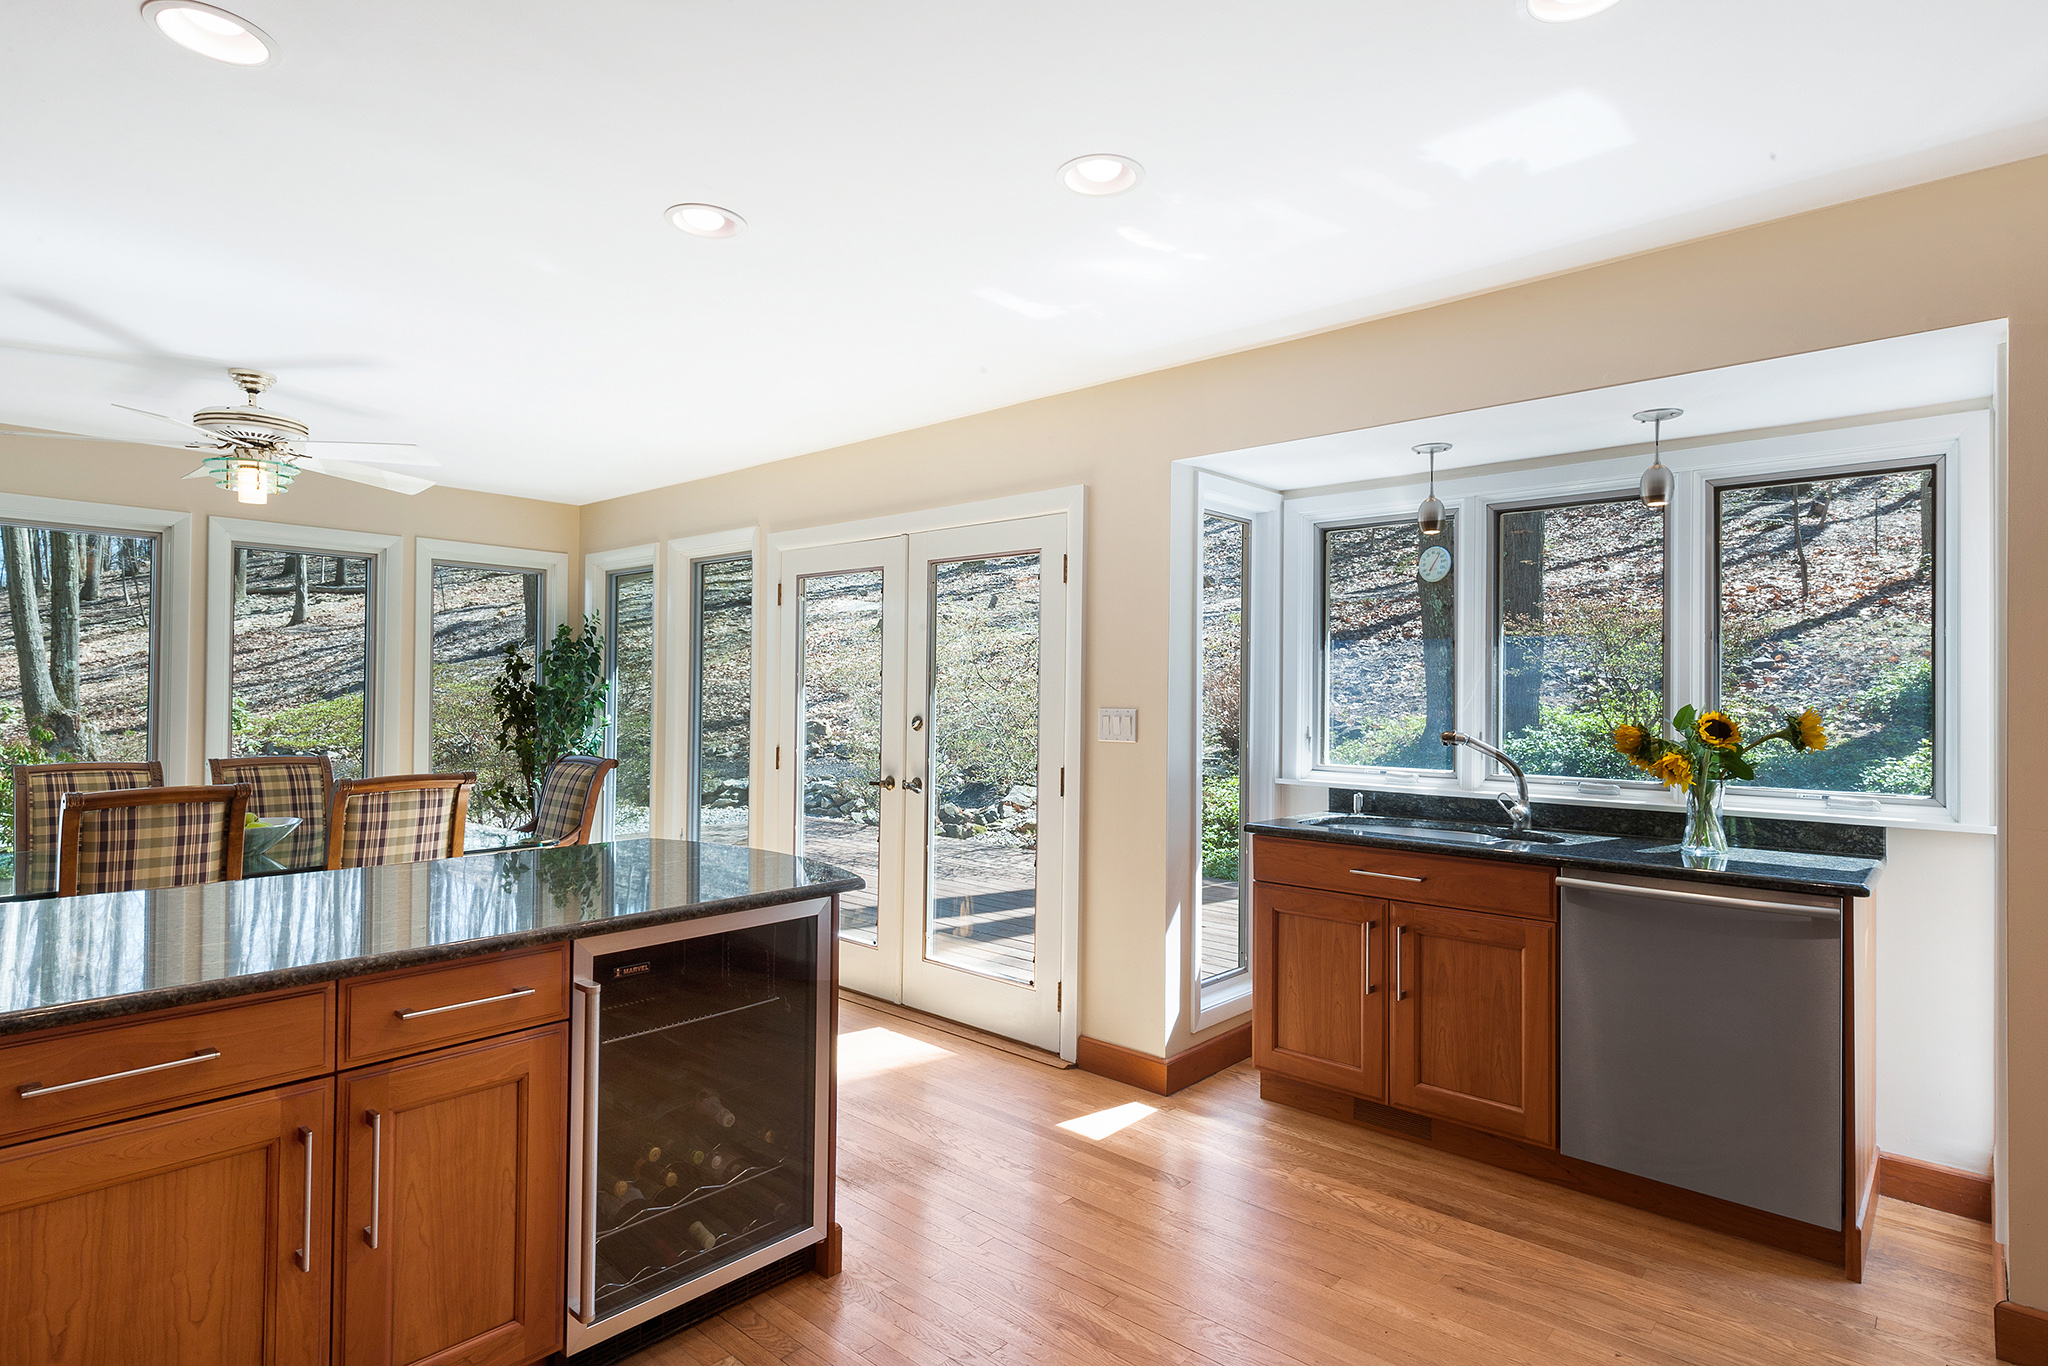 07A Dinner Pot Road, Tewksbury — Kitchen 3 (deleted c4f5f45c26bef1dda3a9c96a9835186c)